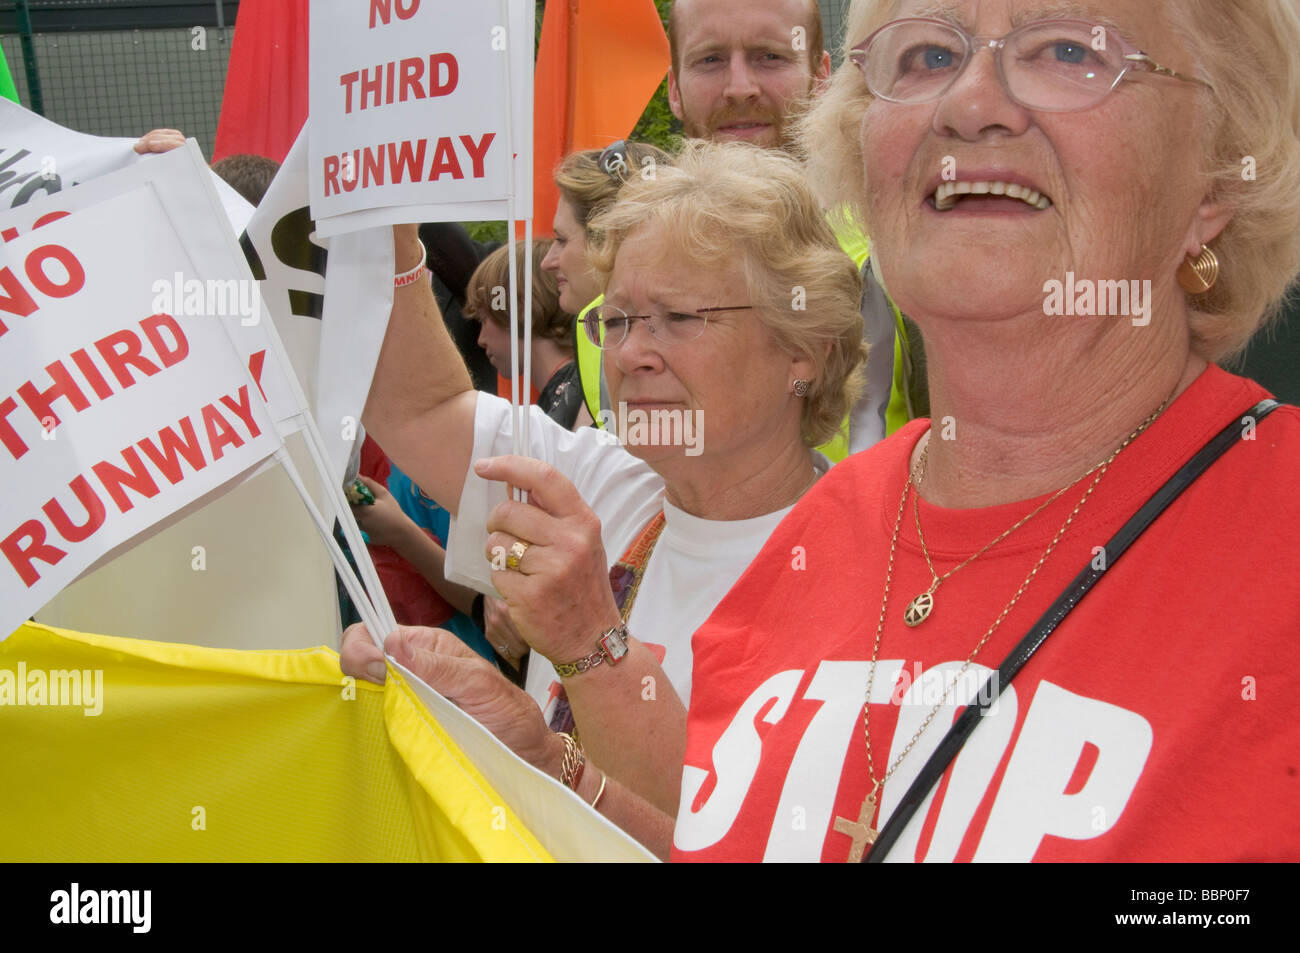 Heathrow - No Third Runway protest march, 31 May 2008. Local residents - Stock Image